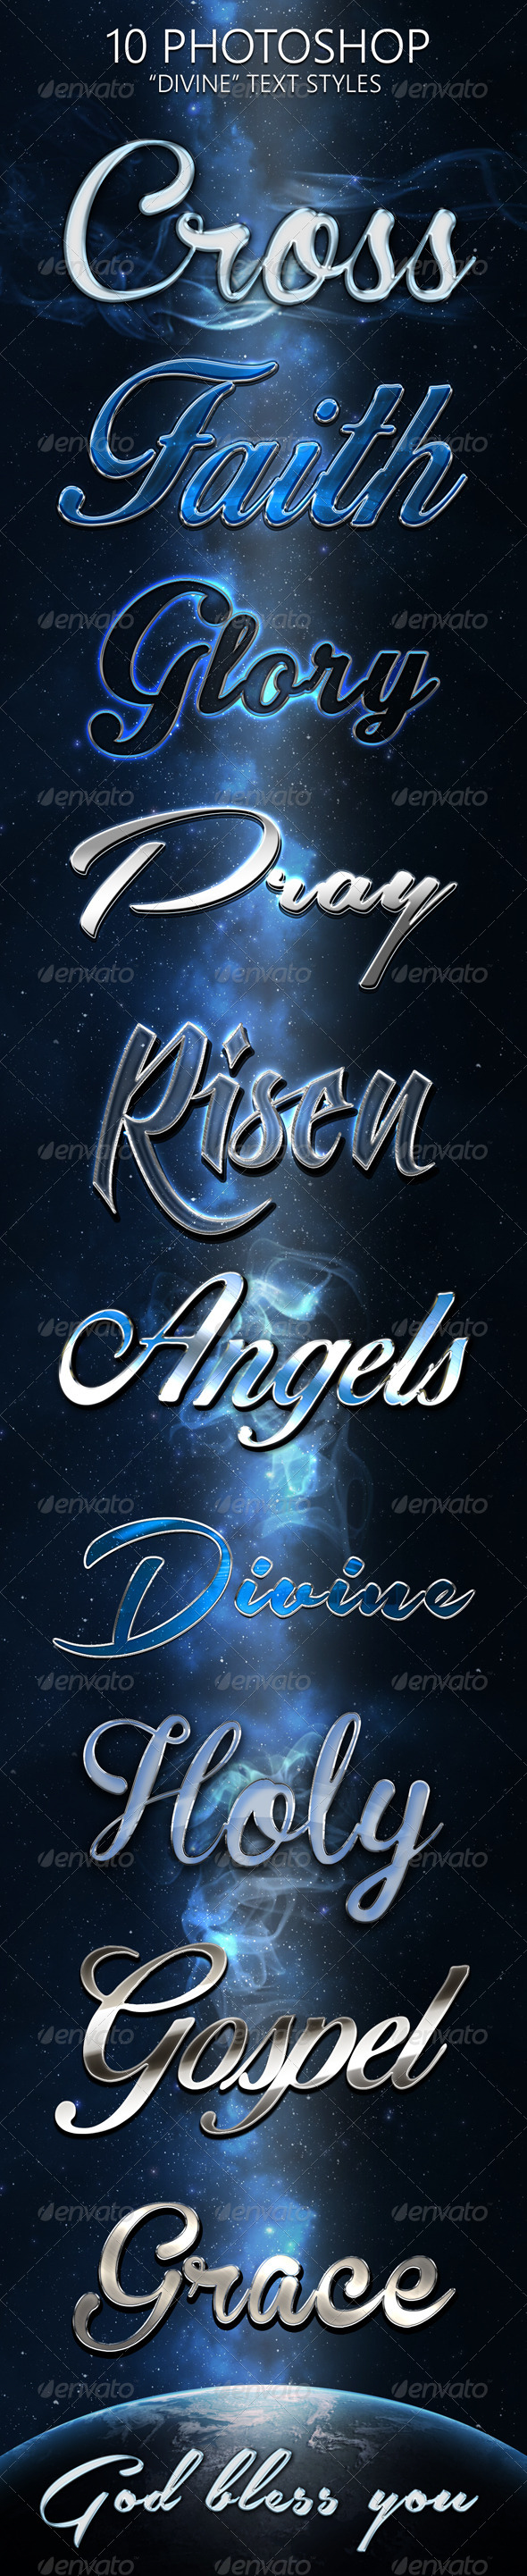 GraphicRiver 10 Divine Photoshop Text Styles 7102180